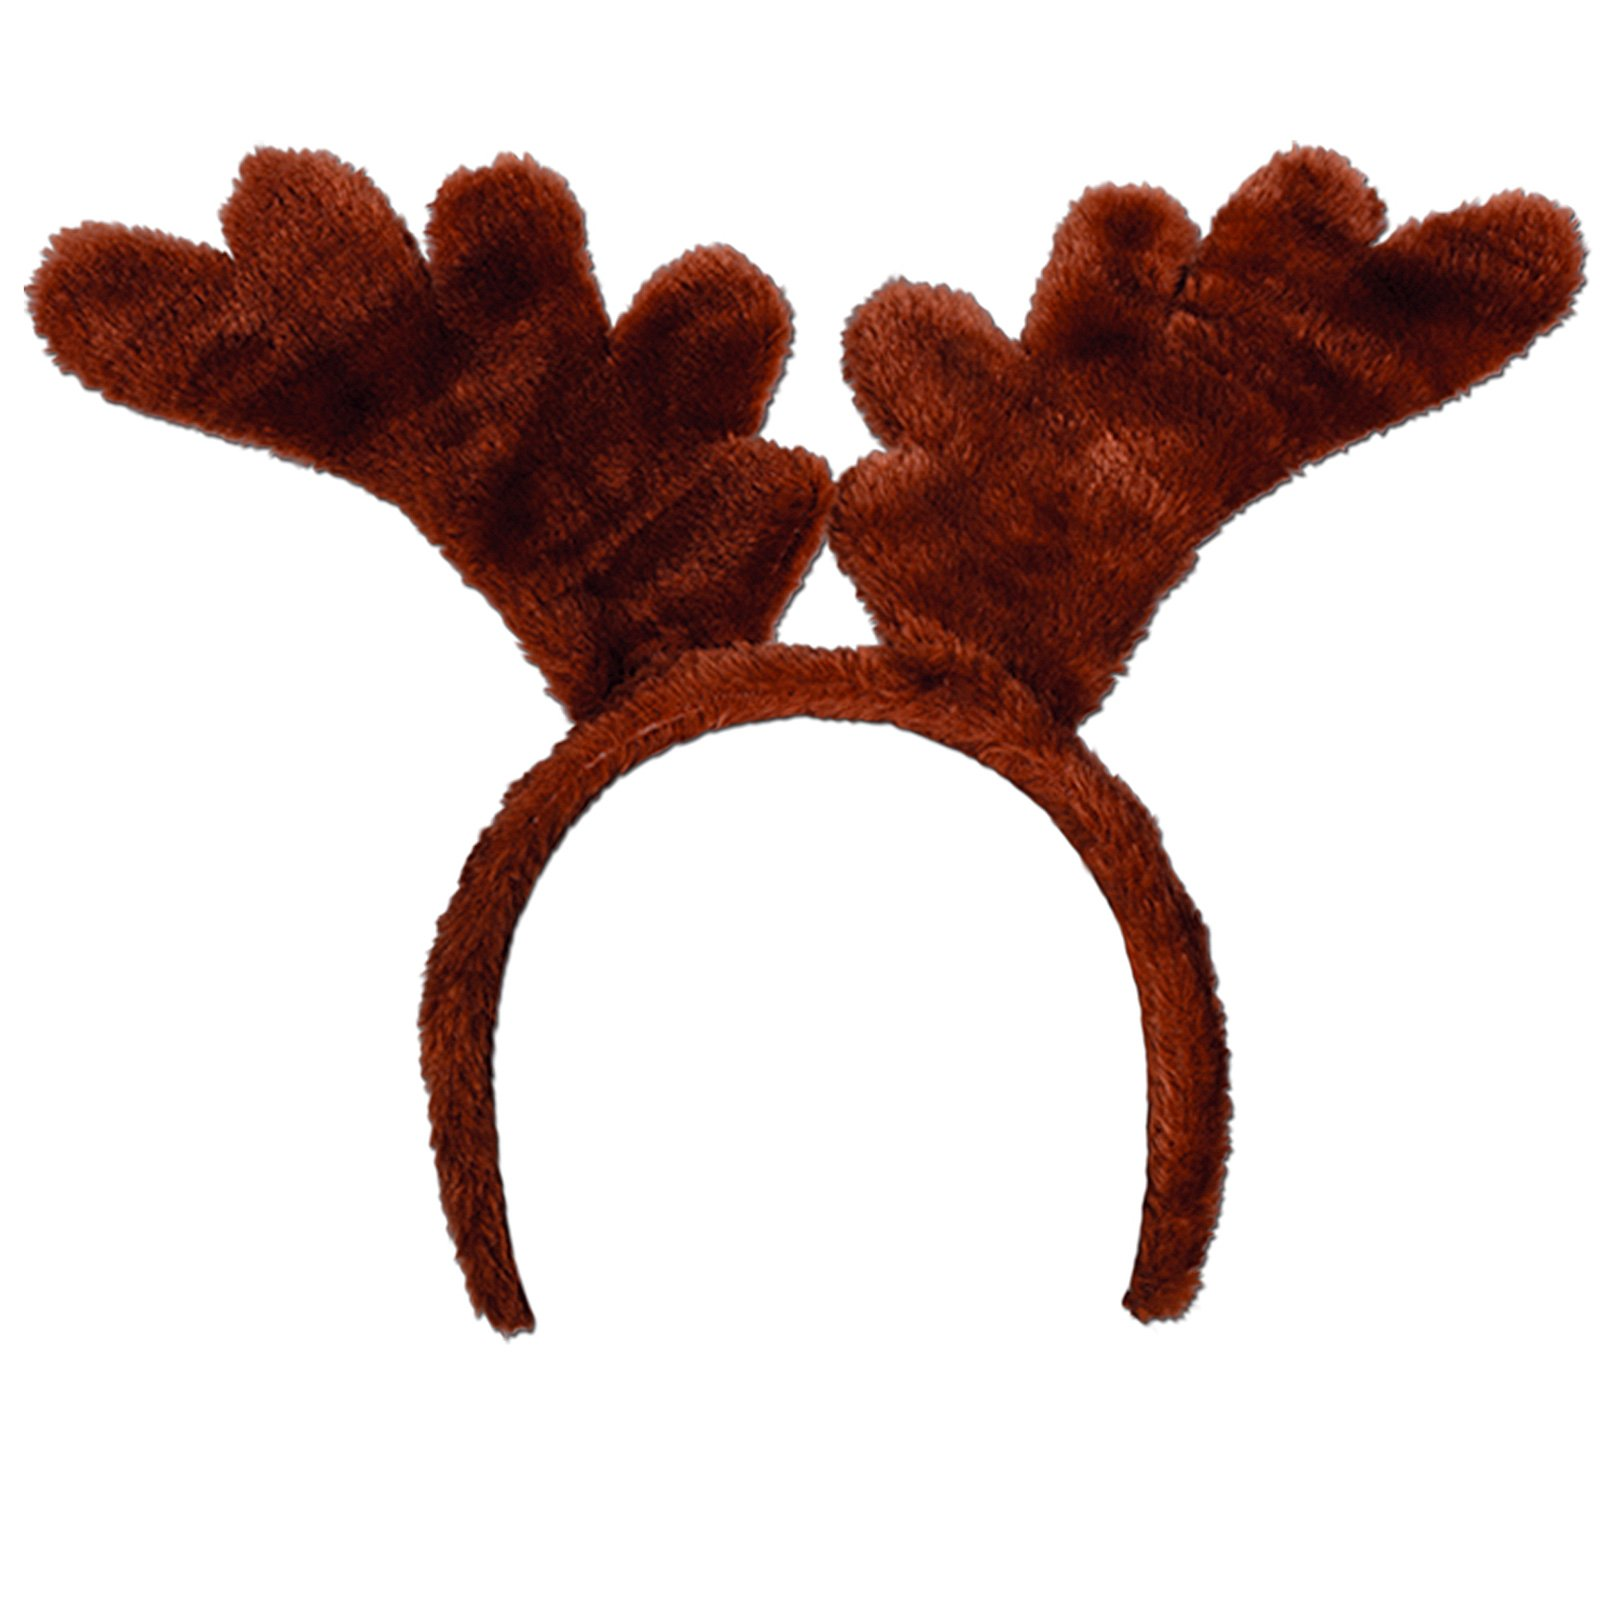 Headband clipart transparent Antlers Reindeer Cliparts Ears transparent